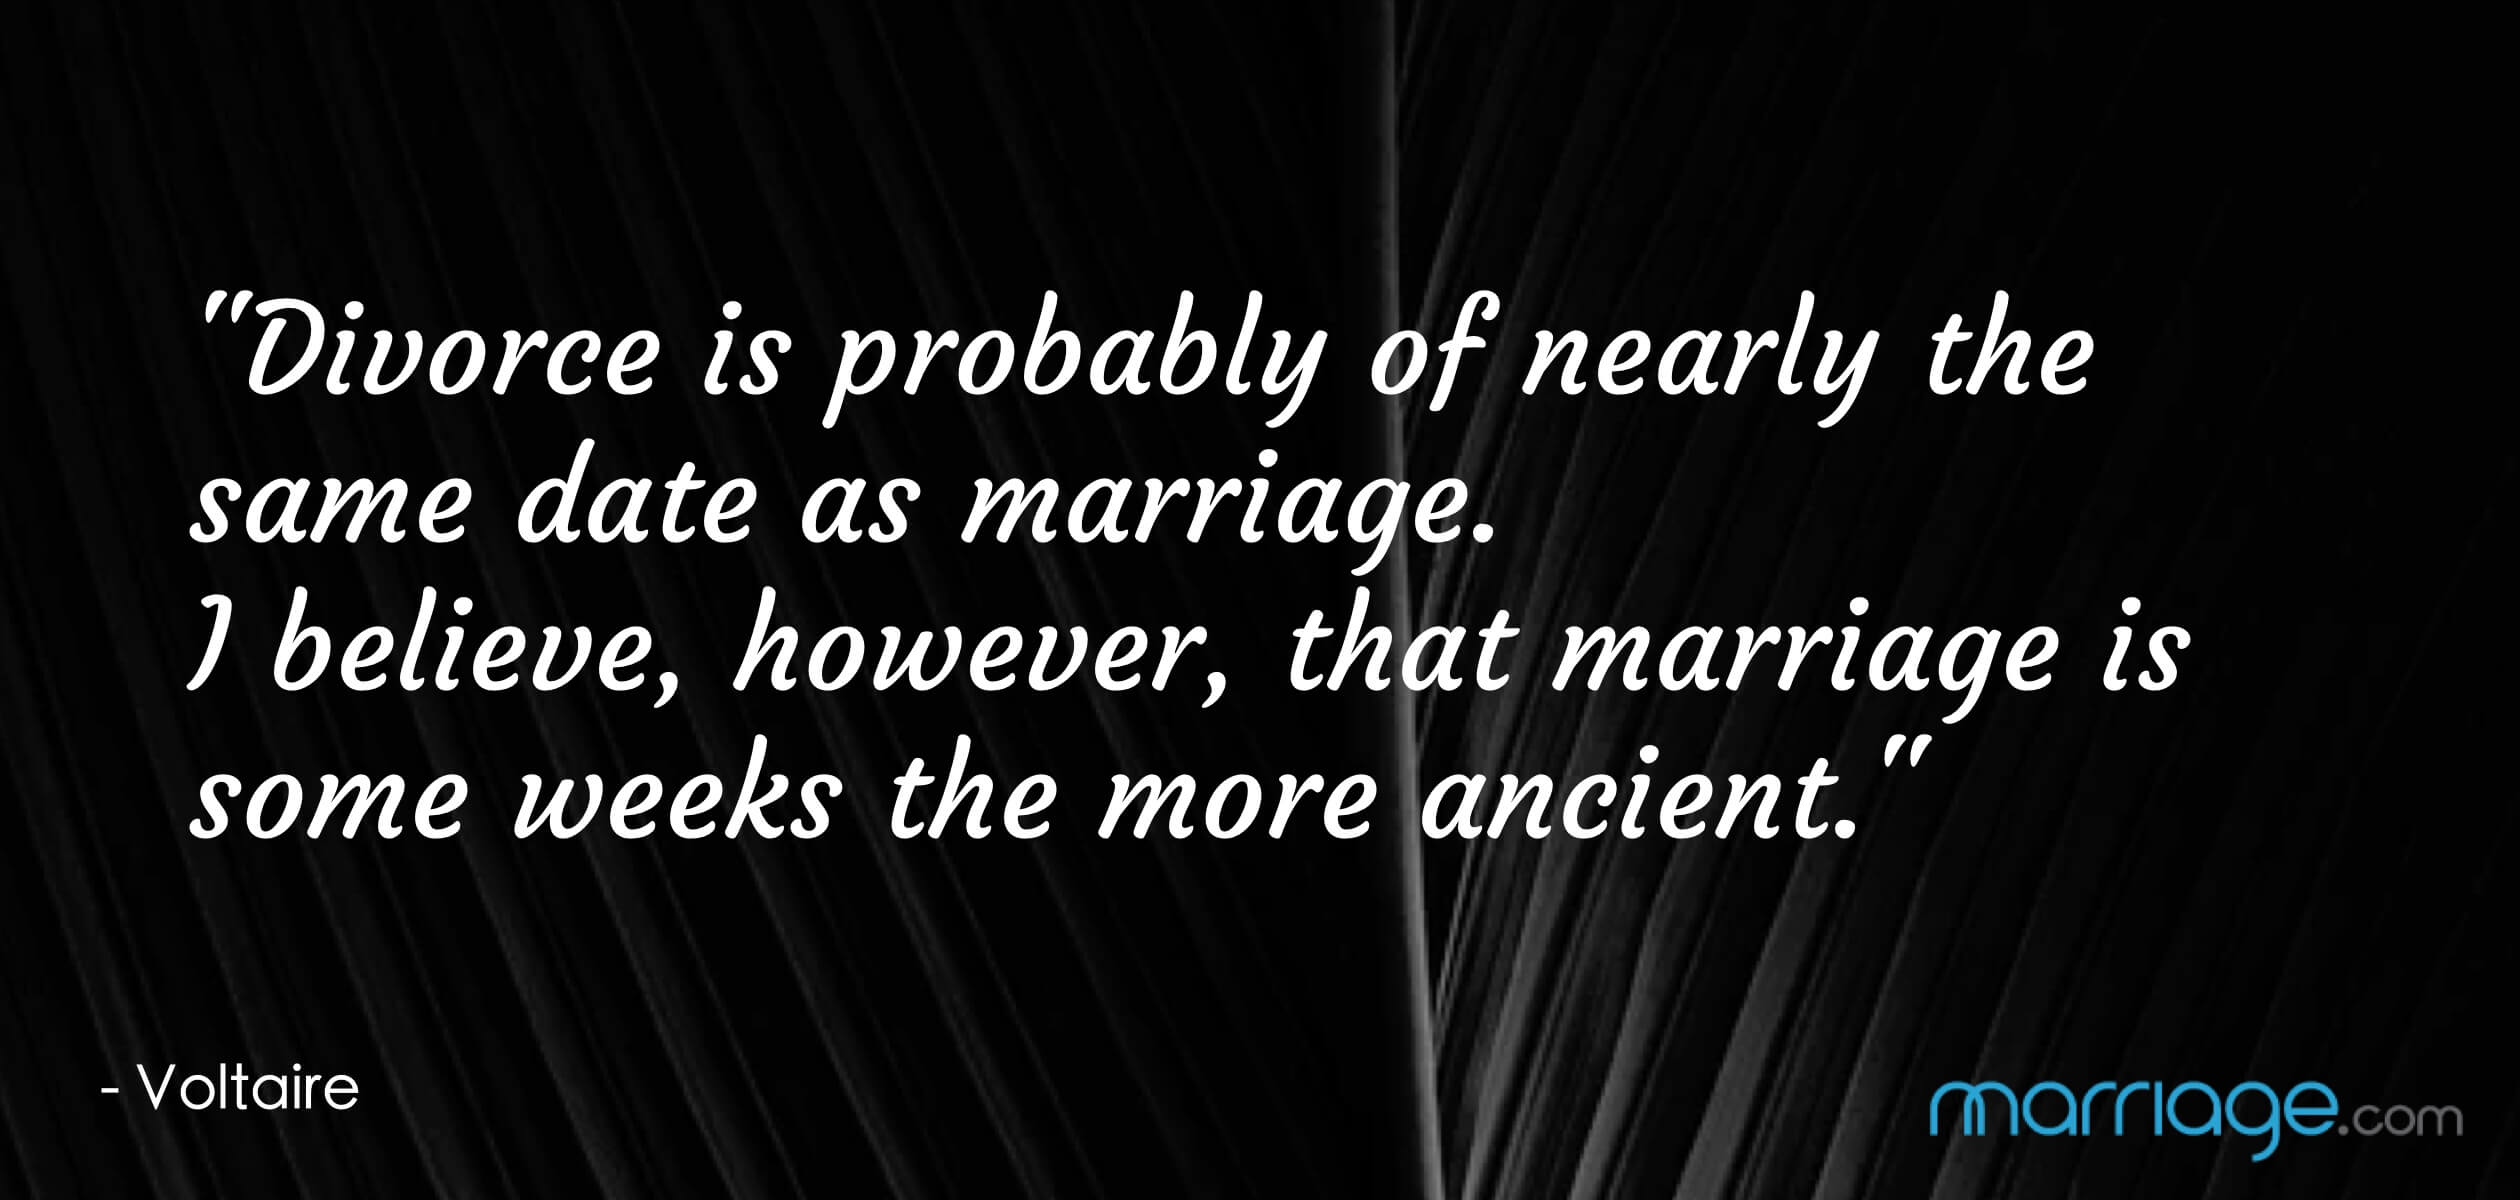 """Divorce is probably of nearly the same date as marriage. I believe, however, that marriage is some weeks the more ancient.\"" - Voltaire"